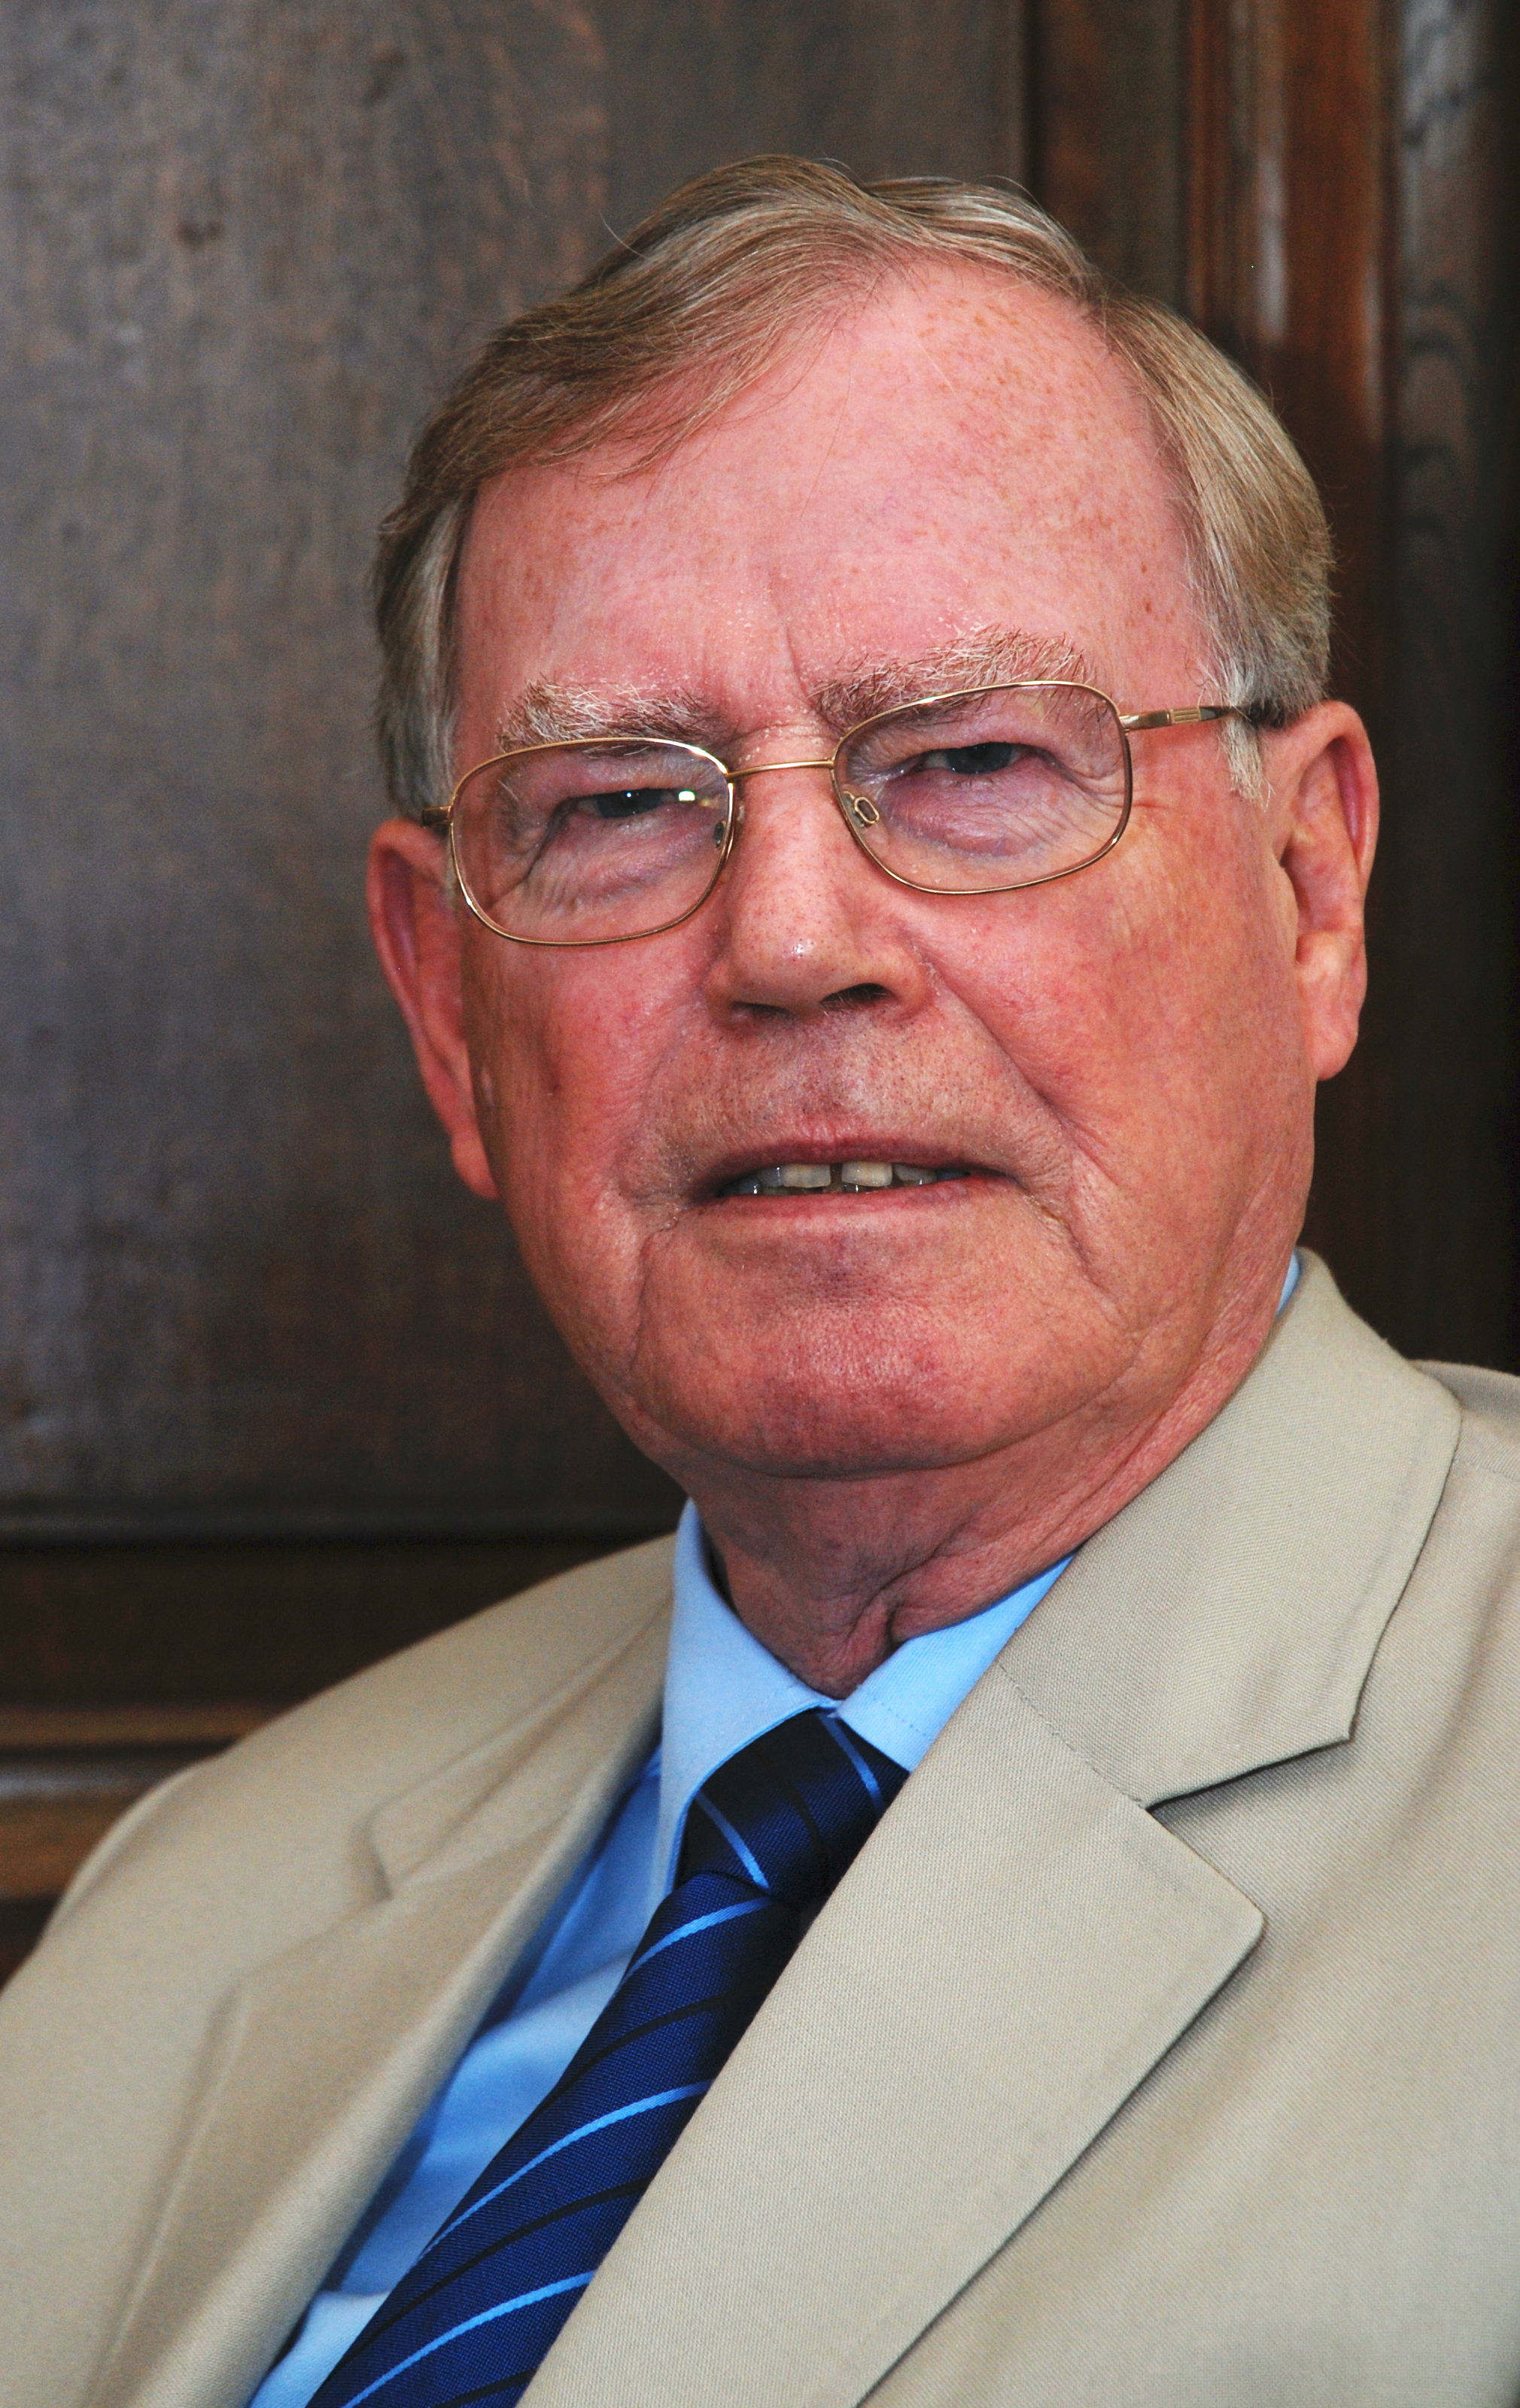 Cllr John Hale has retired after more than 40 years in local politics